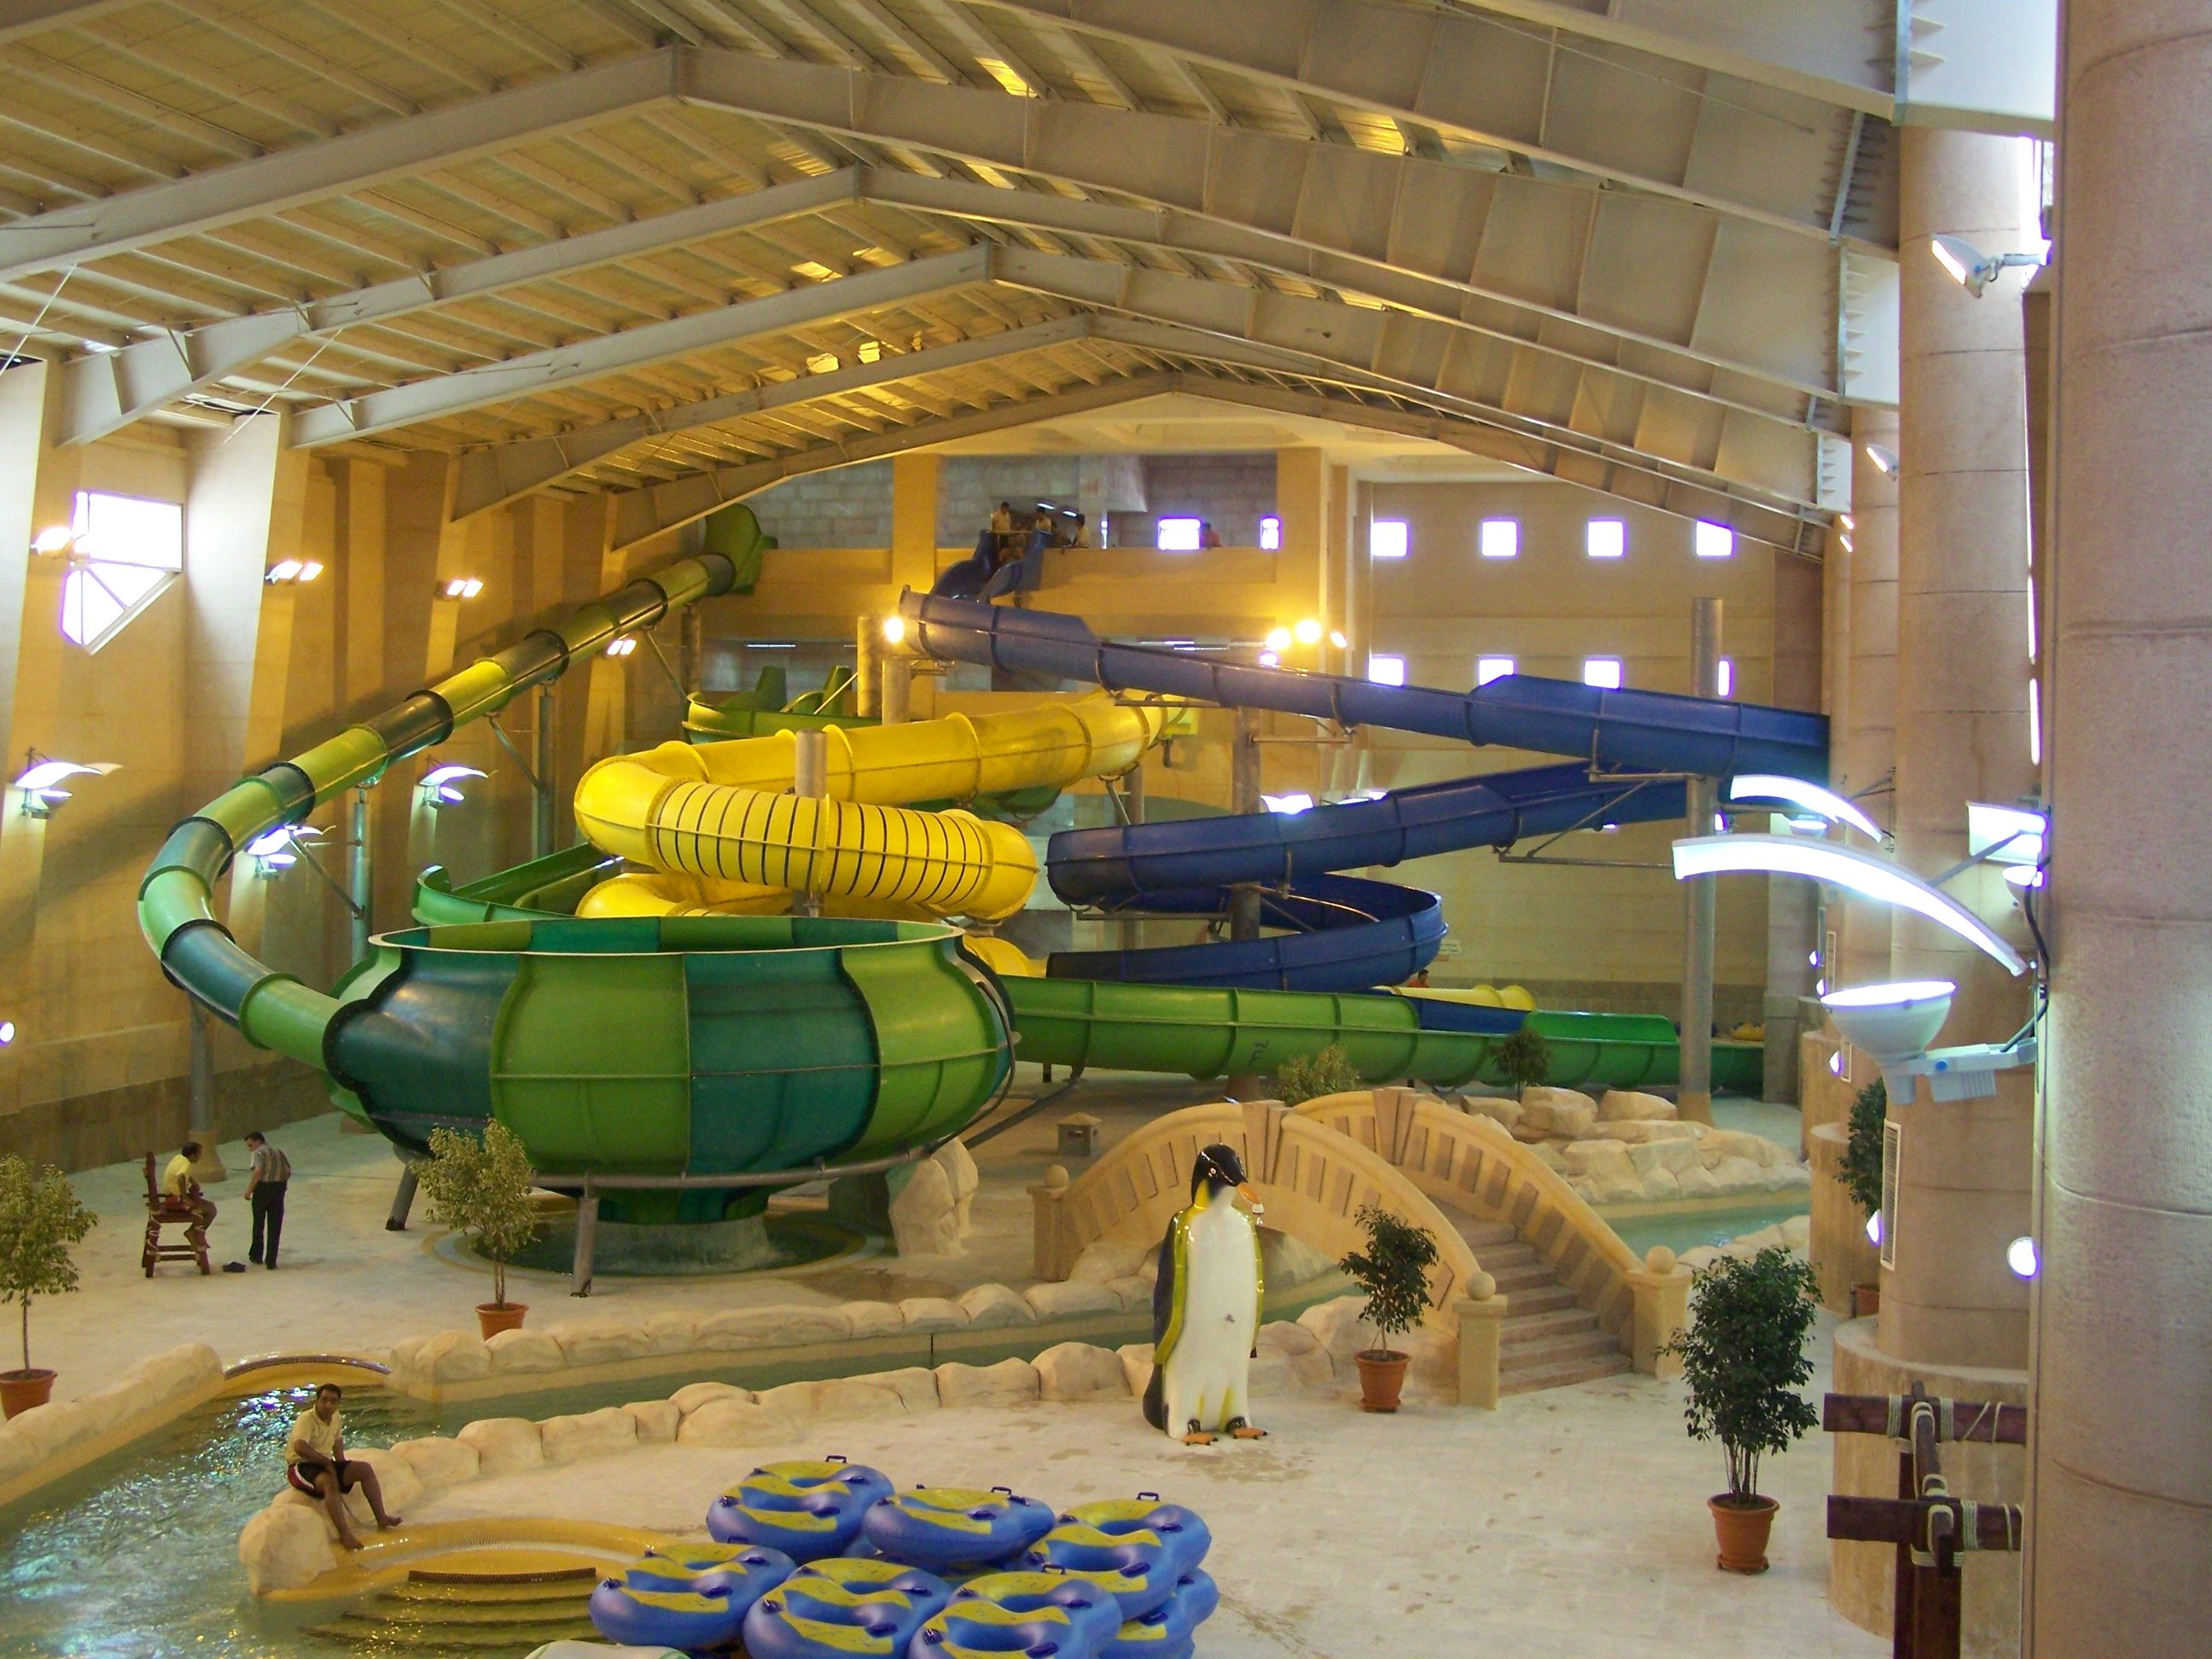 Water waves land mashhad iran indoor water parks in - Indoor swimming pool with slides london ...